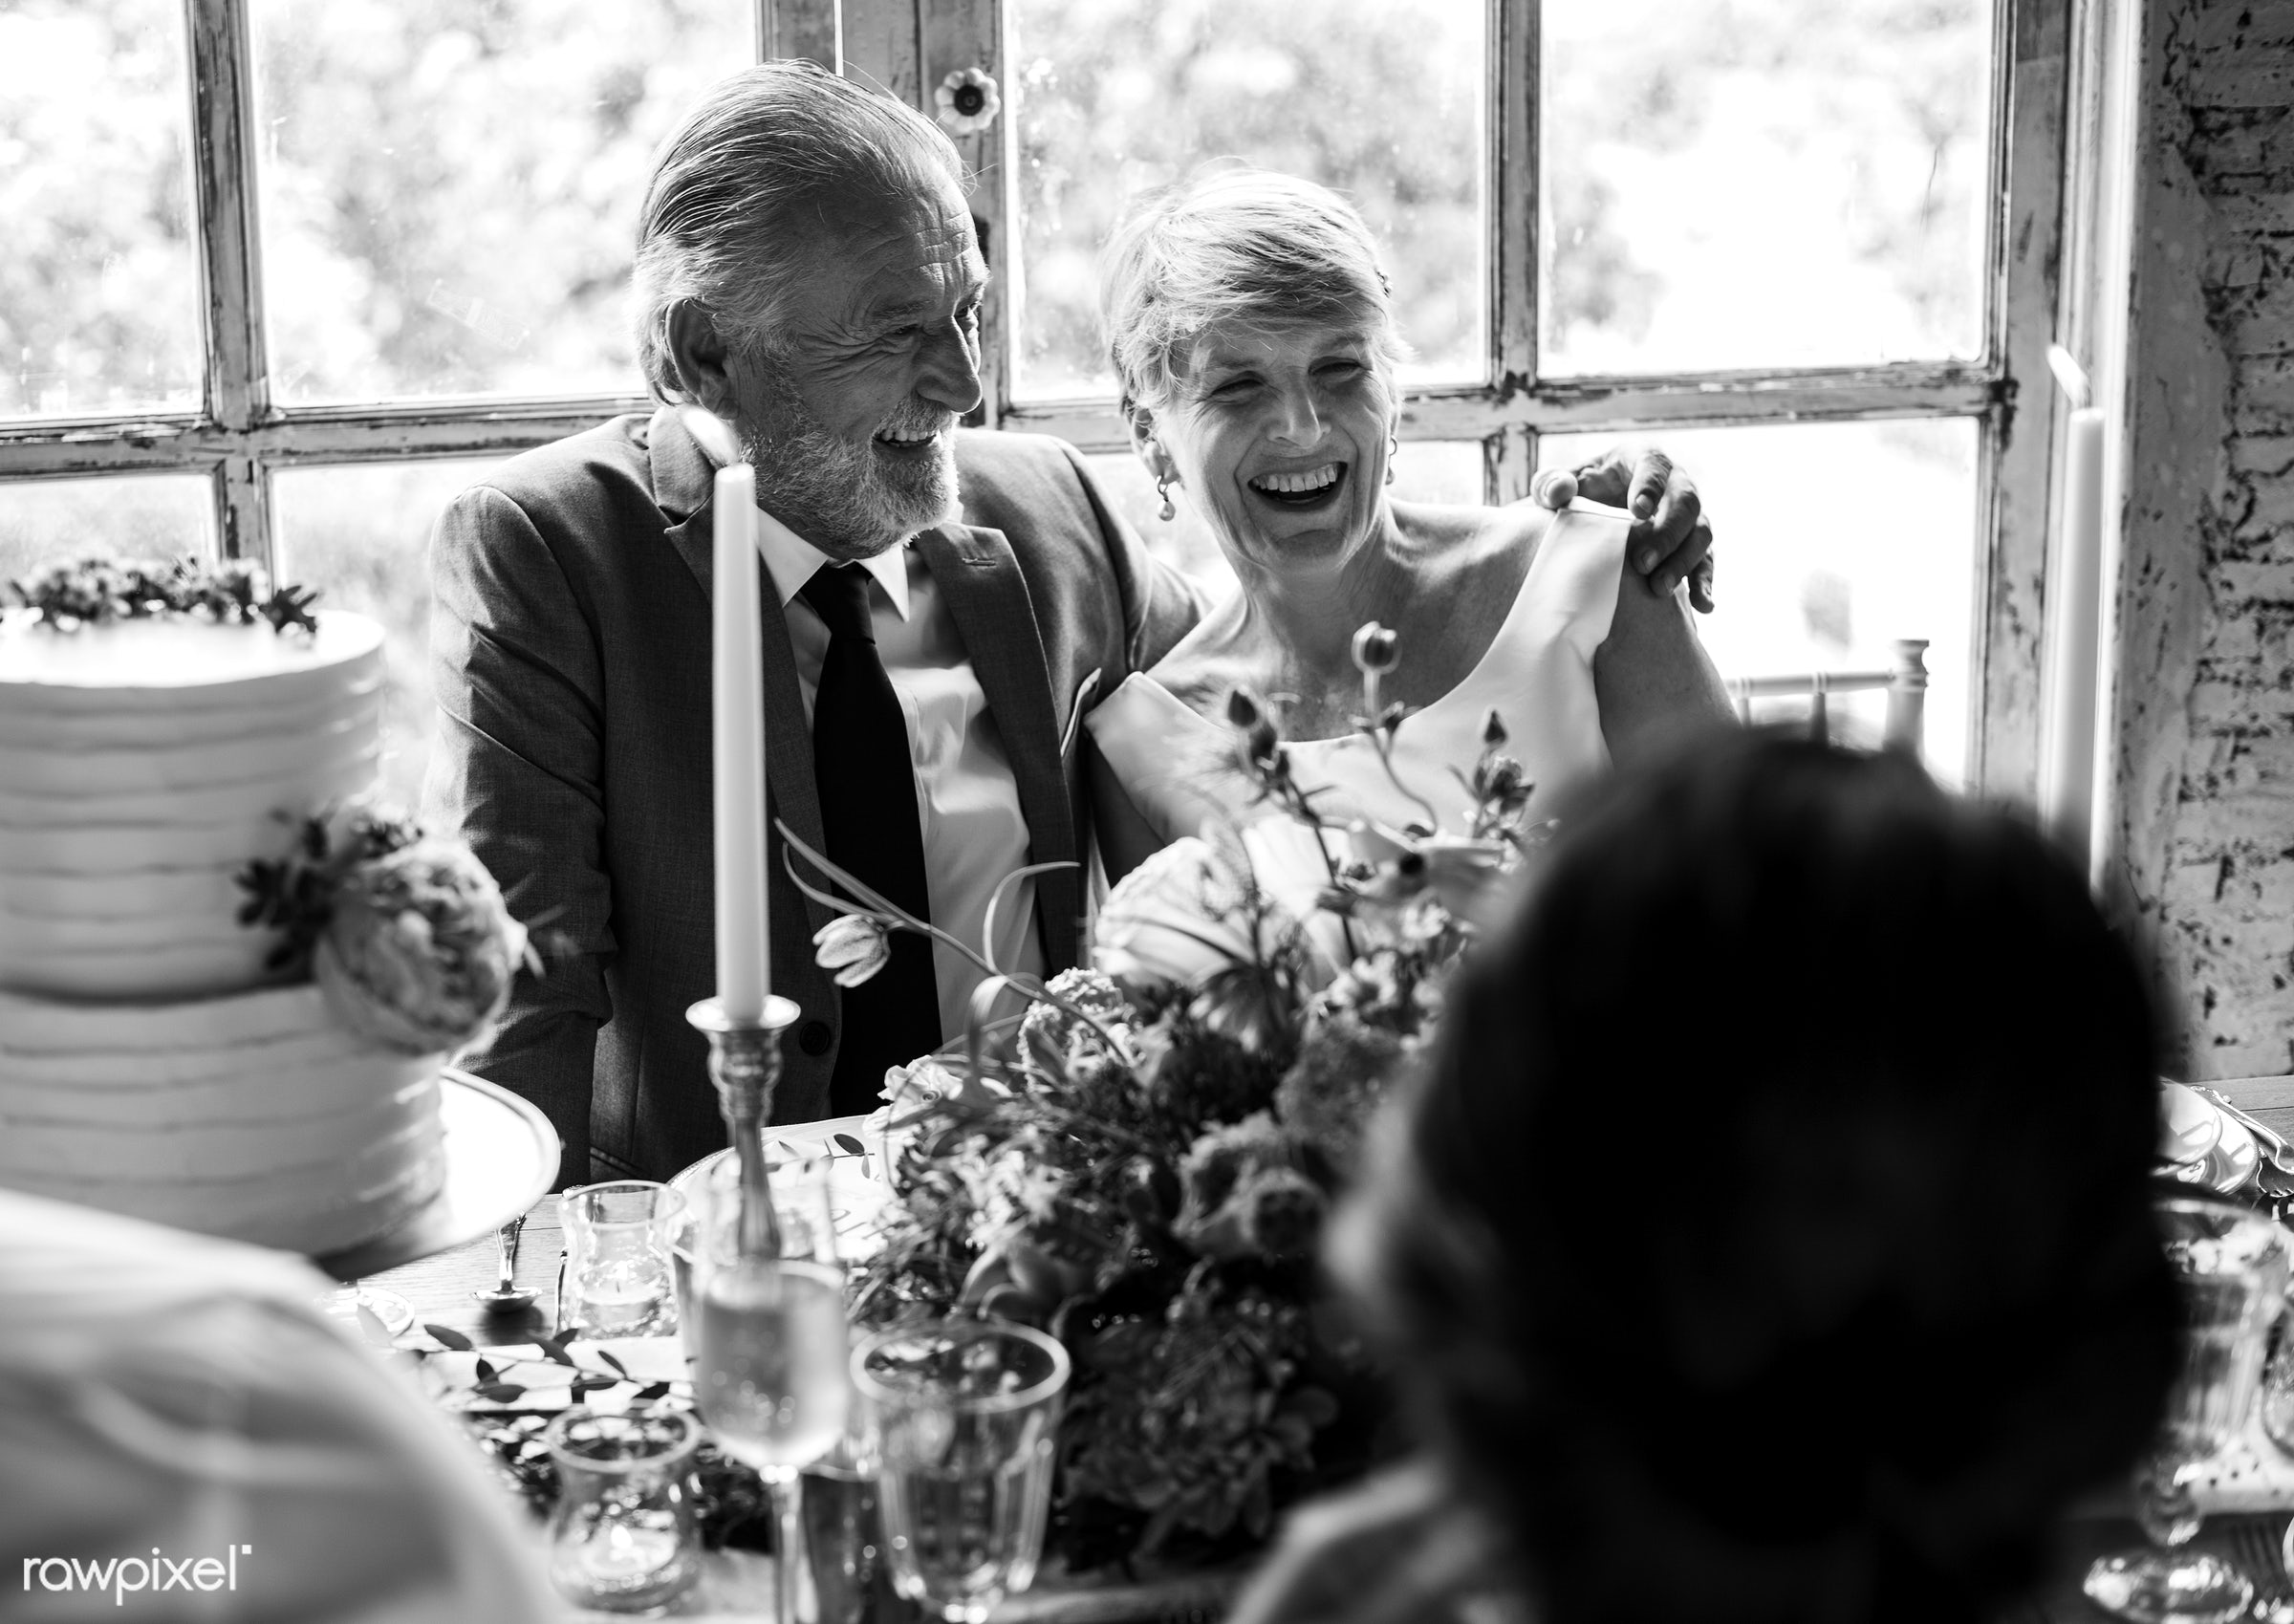 occasion, people, together, caucasian, love, friends, event, gathering, flowers, cheerful, senior couple, anniversary, table...